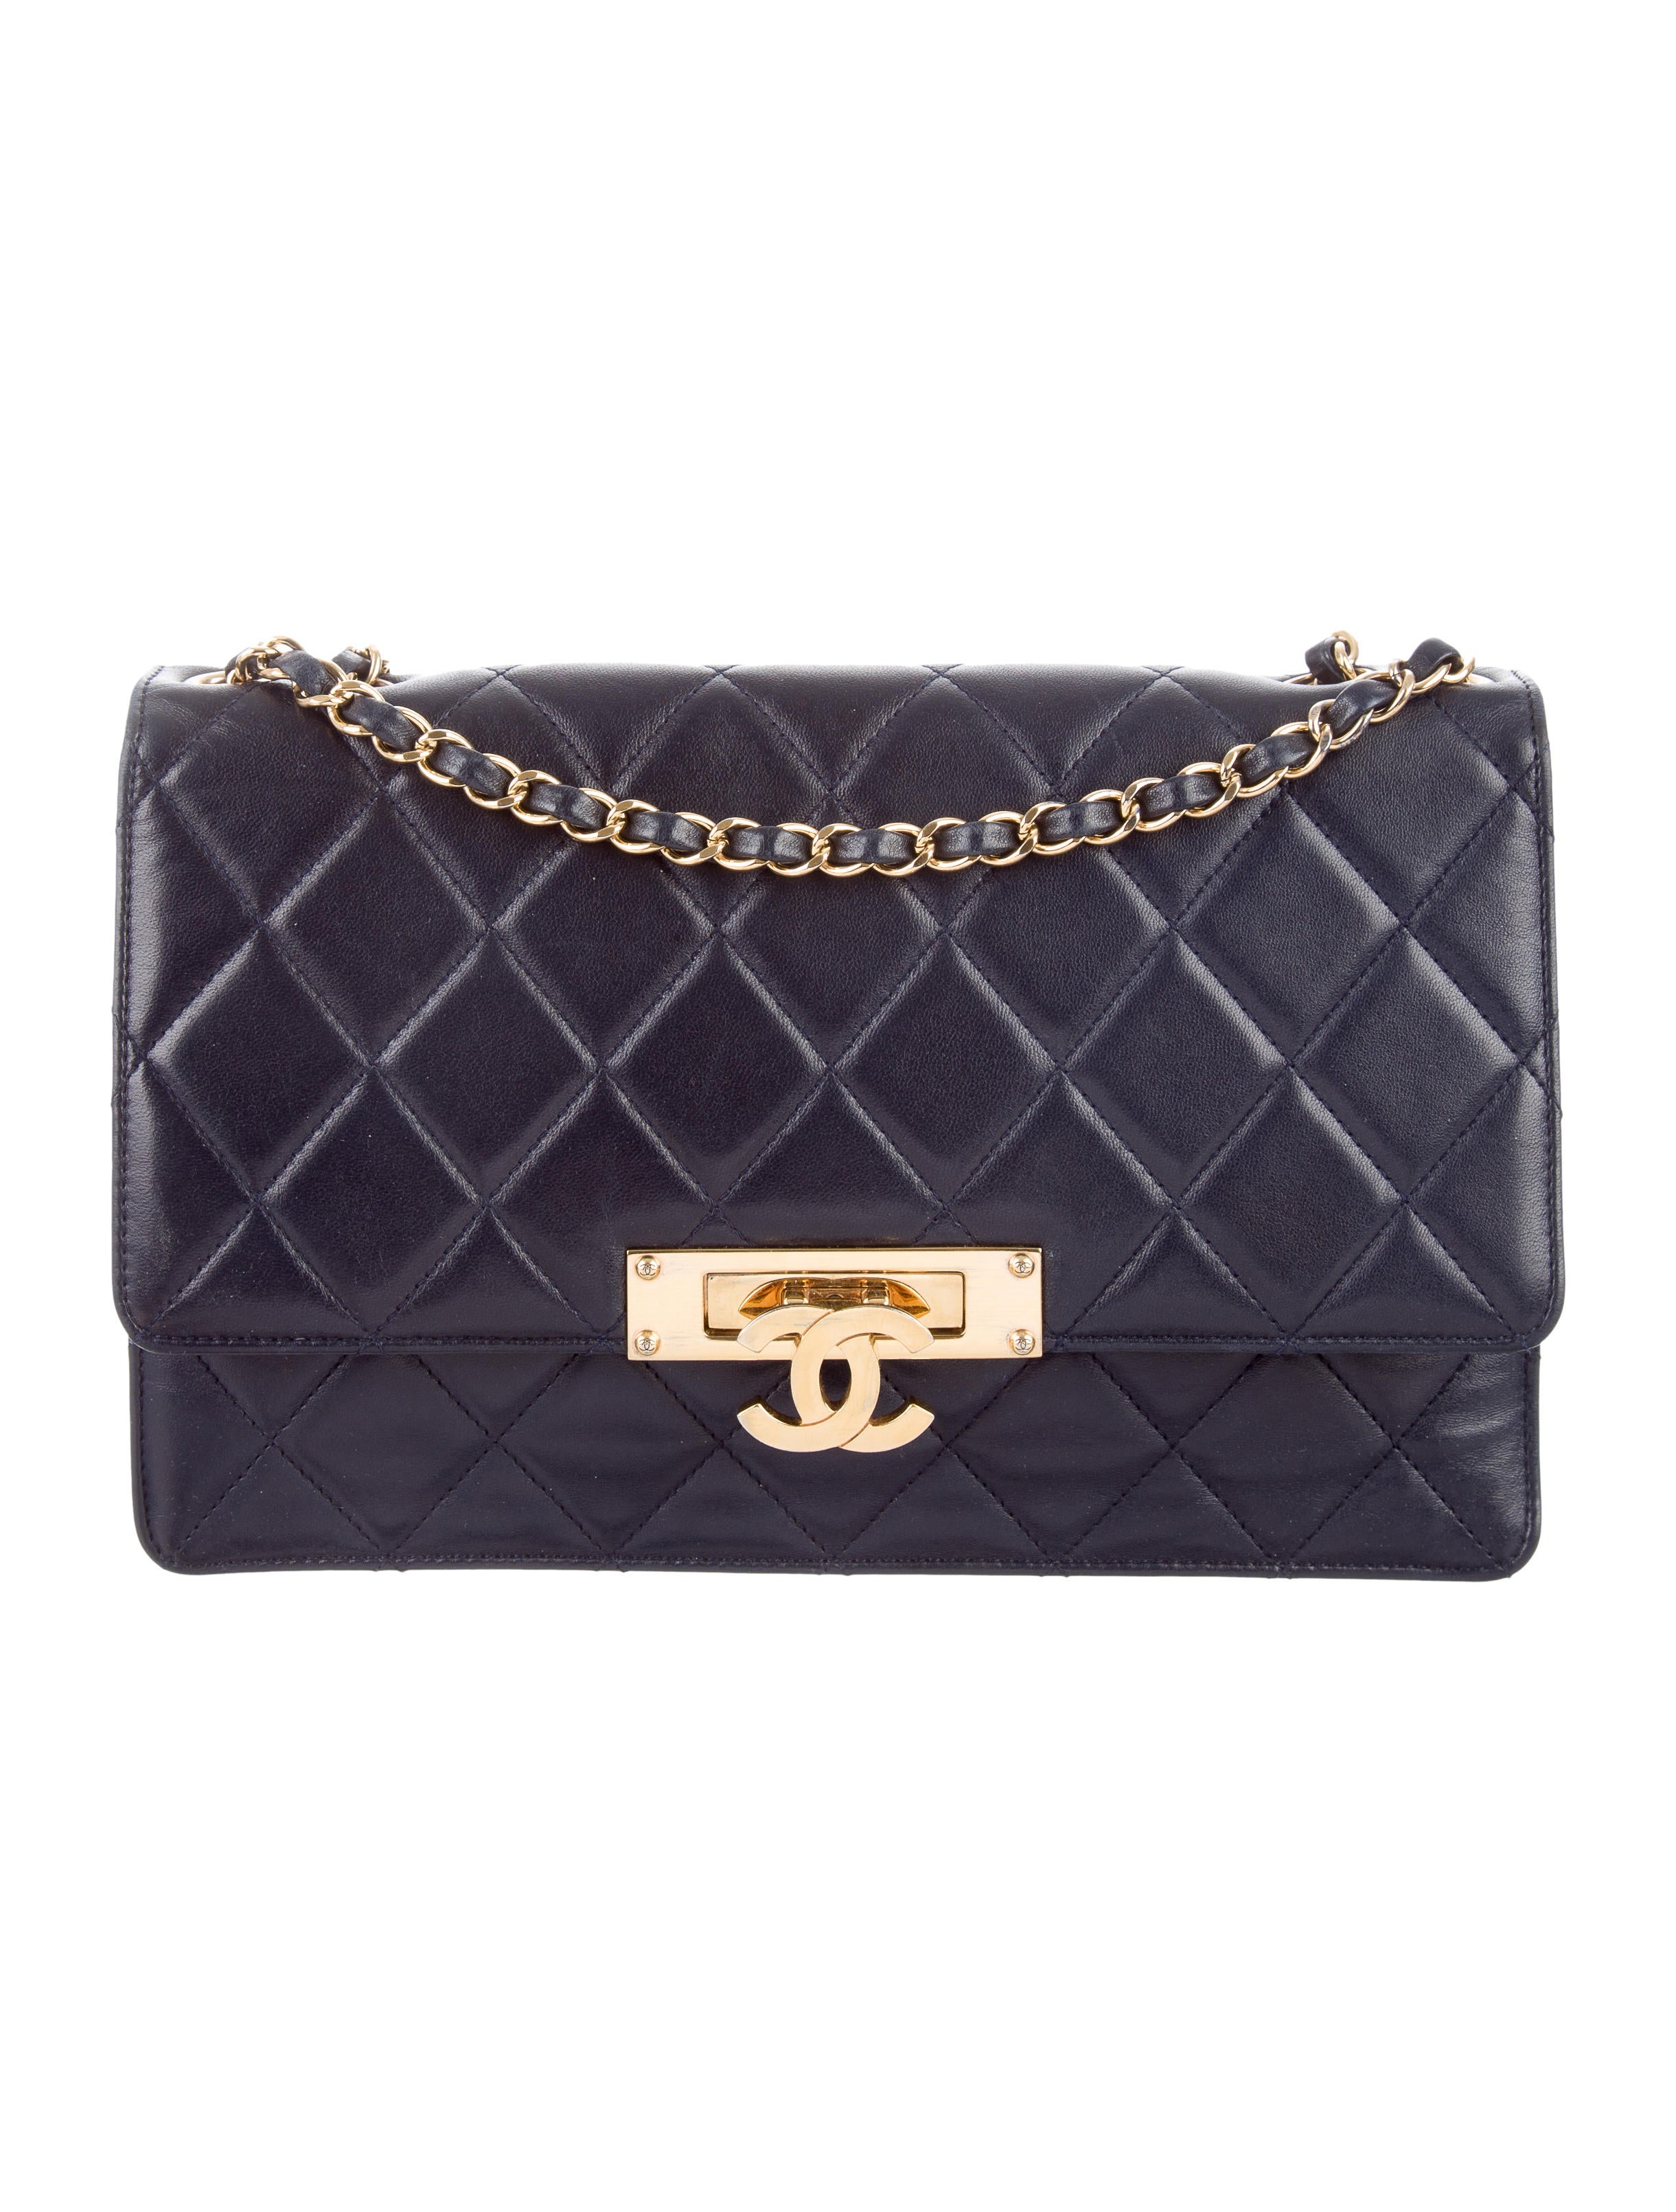 a1e8ec8e1592 Class Chanel Bags Sale | Stanford Center for Opportunity Policy in ...